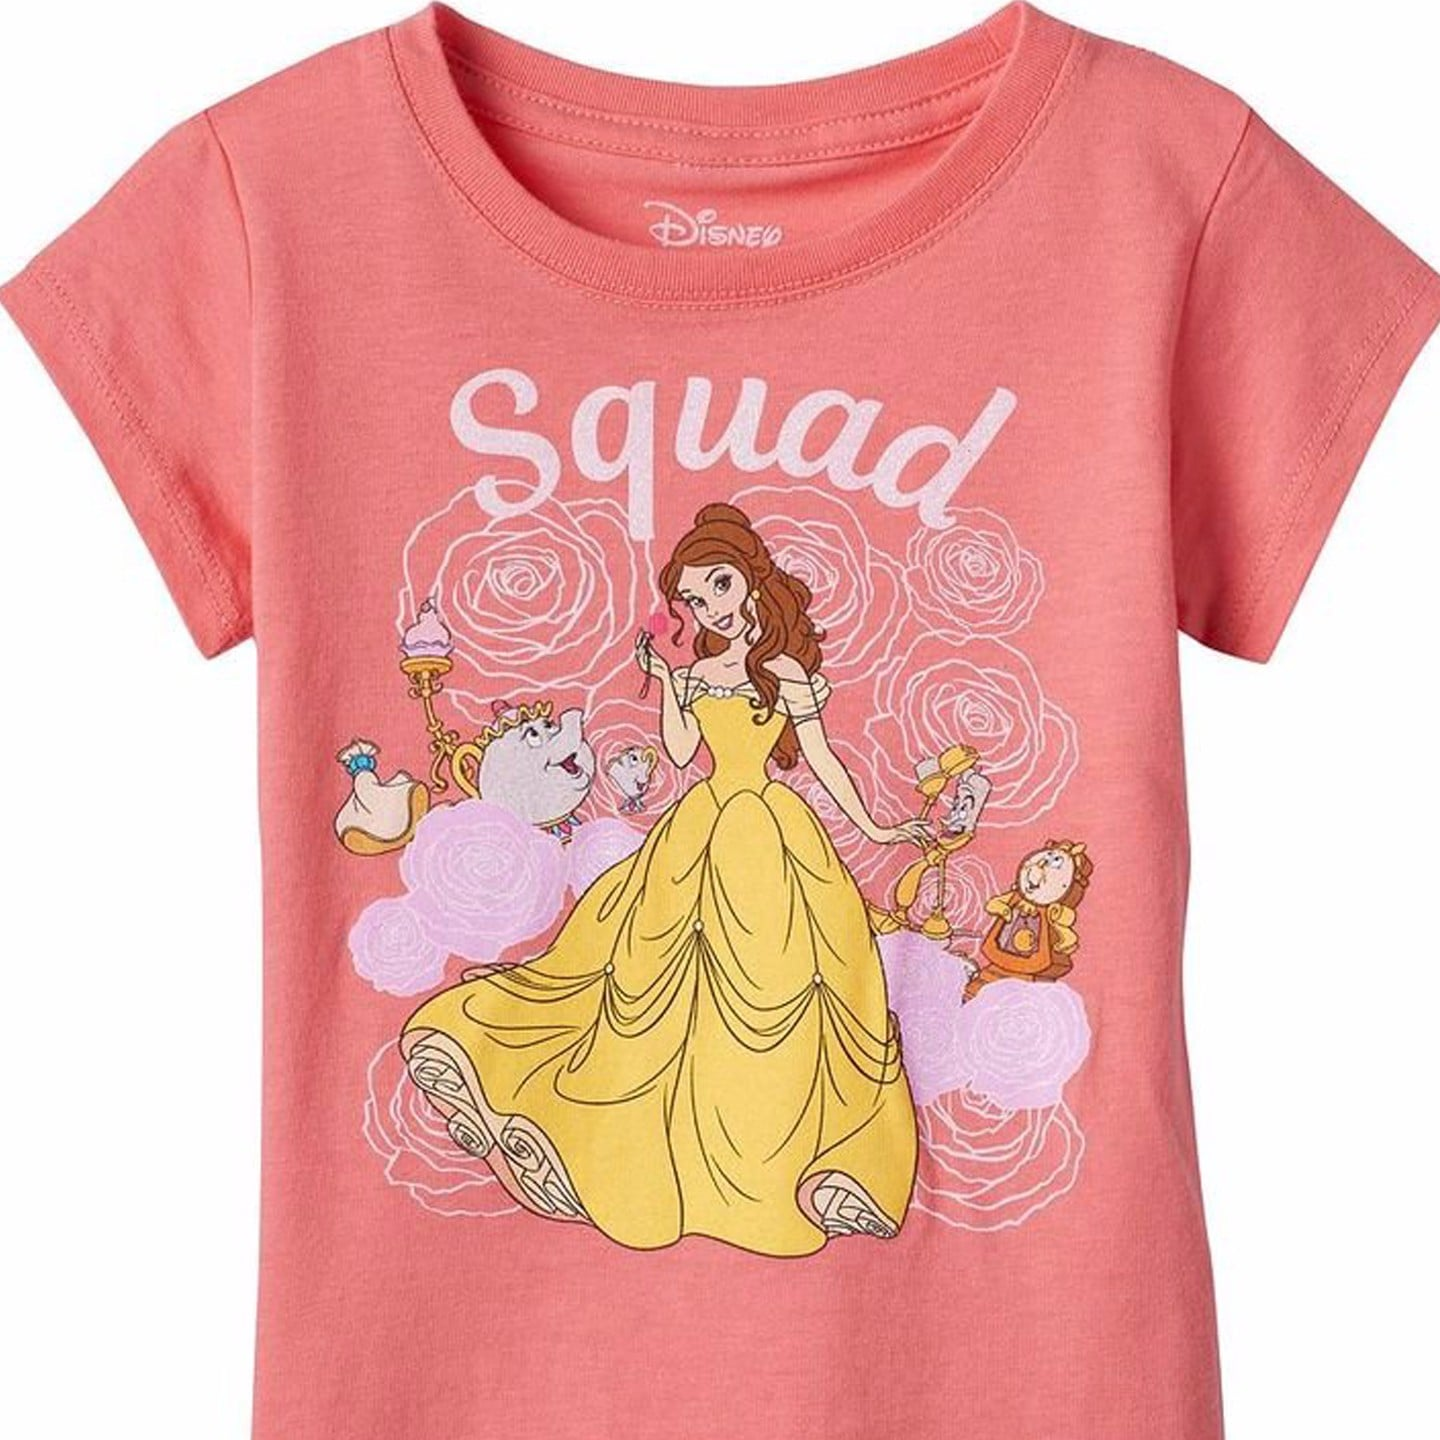 96d9f3a47 Gap babyGap Disney Baby Belle Print Sleep Set ($23, originally $30) |  Beauty and the Beast Kids' Clothes | POPSUGAR Family Photo 12